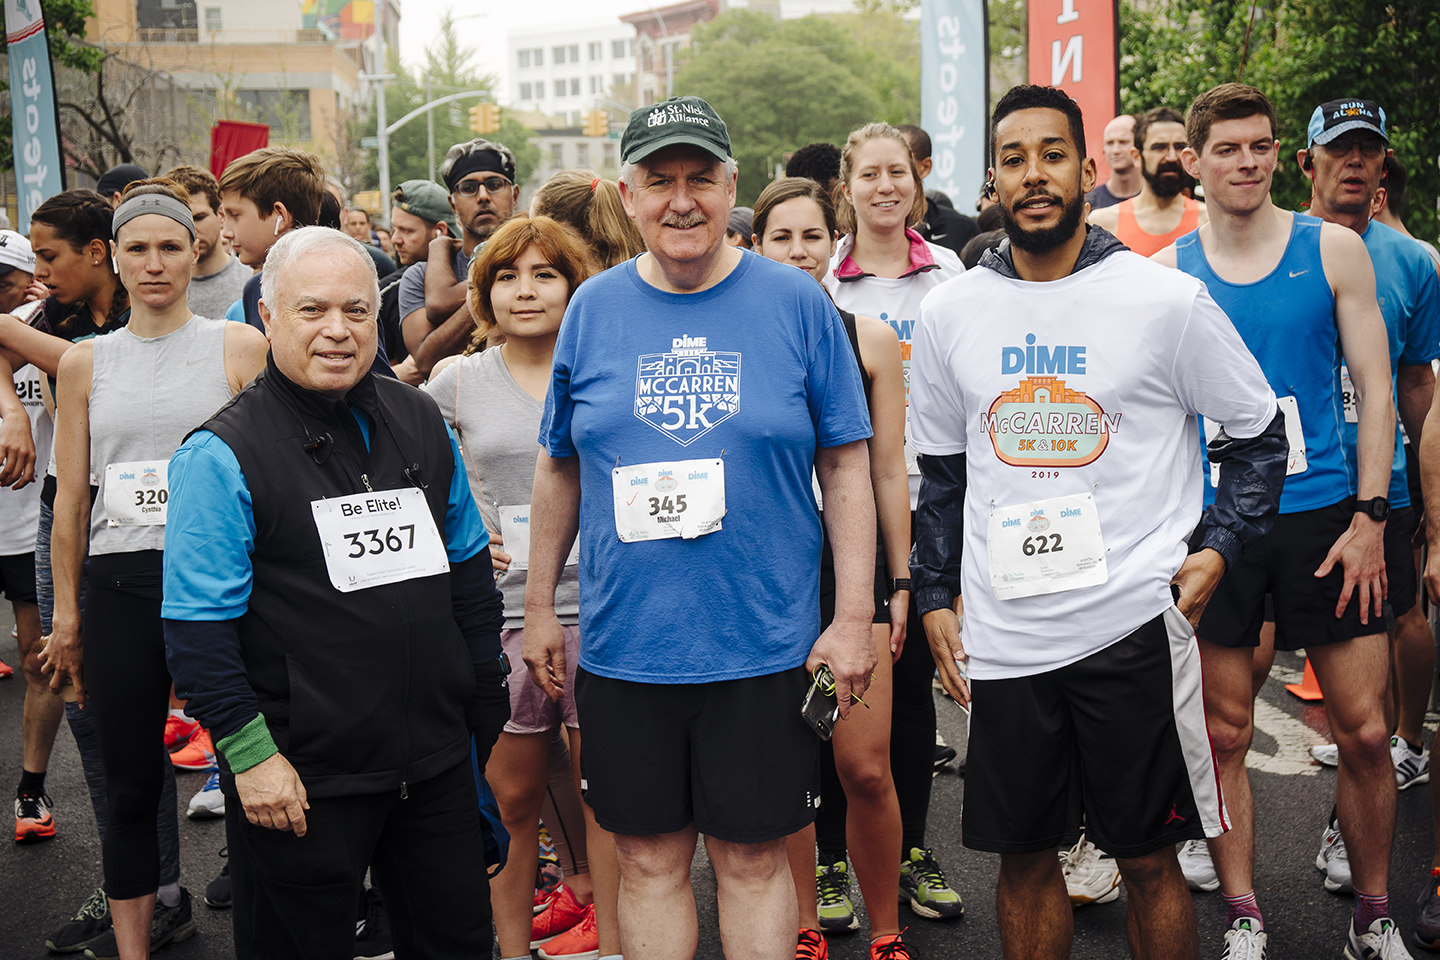 The Dime McCarren 5k/10k starting line with (l to r) Kenneth J. Mahon, Dime President and Chief Executive Officer; Michael Rochford, St. Nicks Alliance Exec. Dir.; and Council Member Antonio Reynoso,  Photo Credit Stefano Giovannini